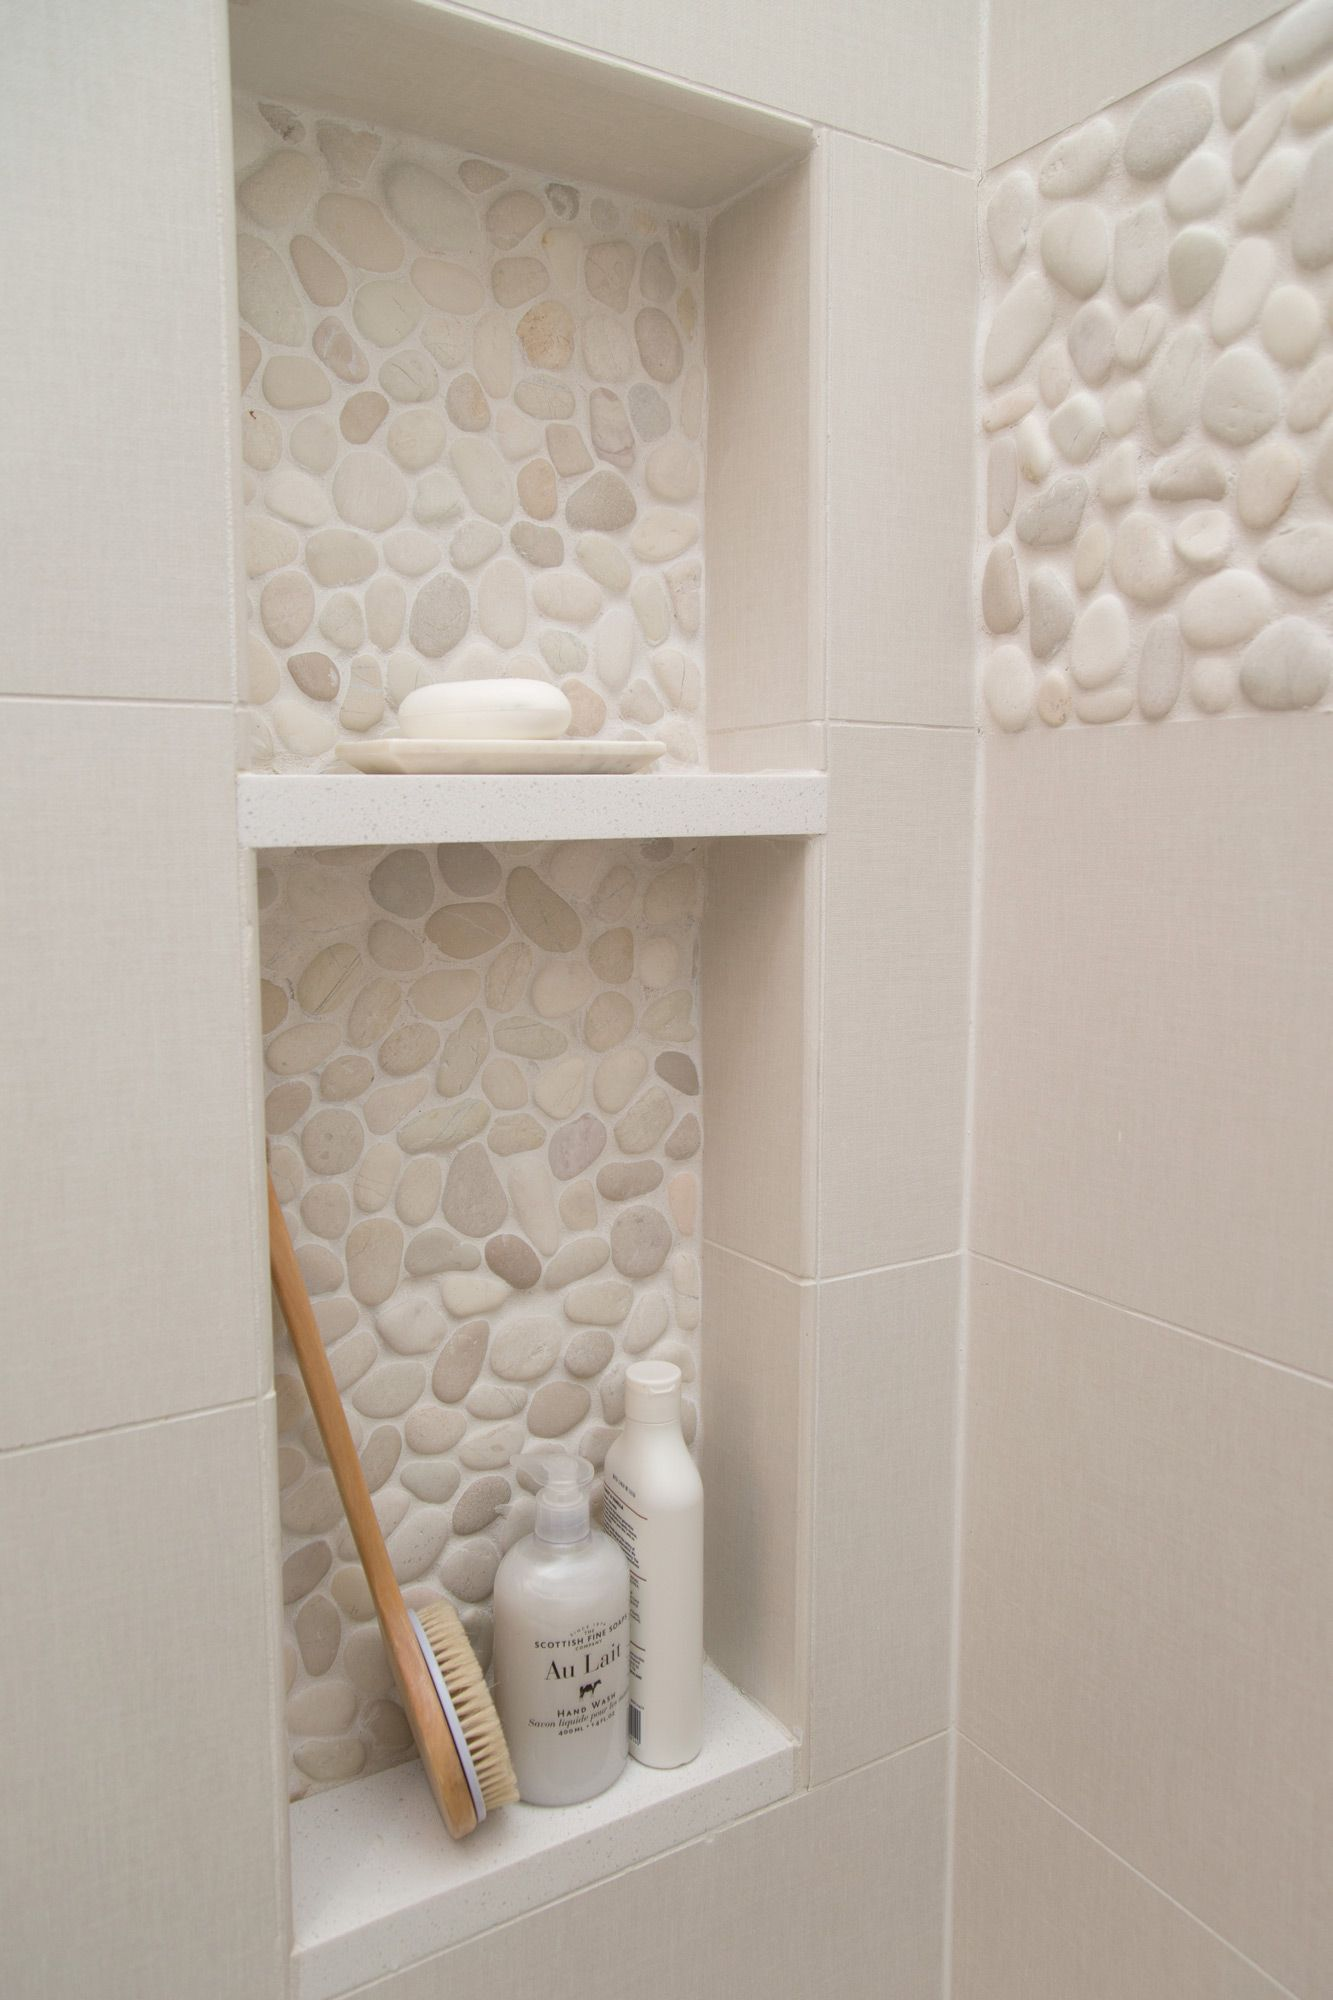 11 spectacular shampoo niches to inspire the design of your own